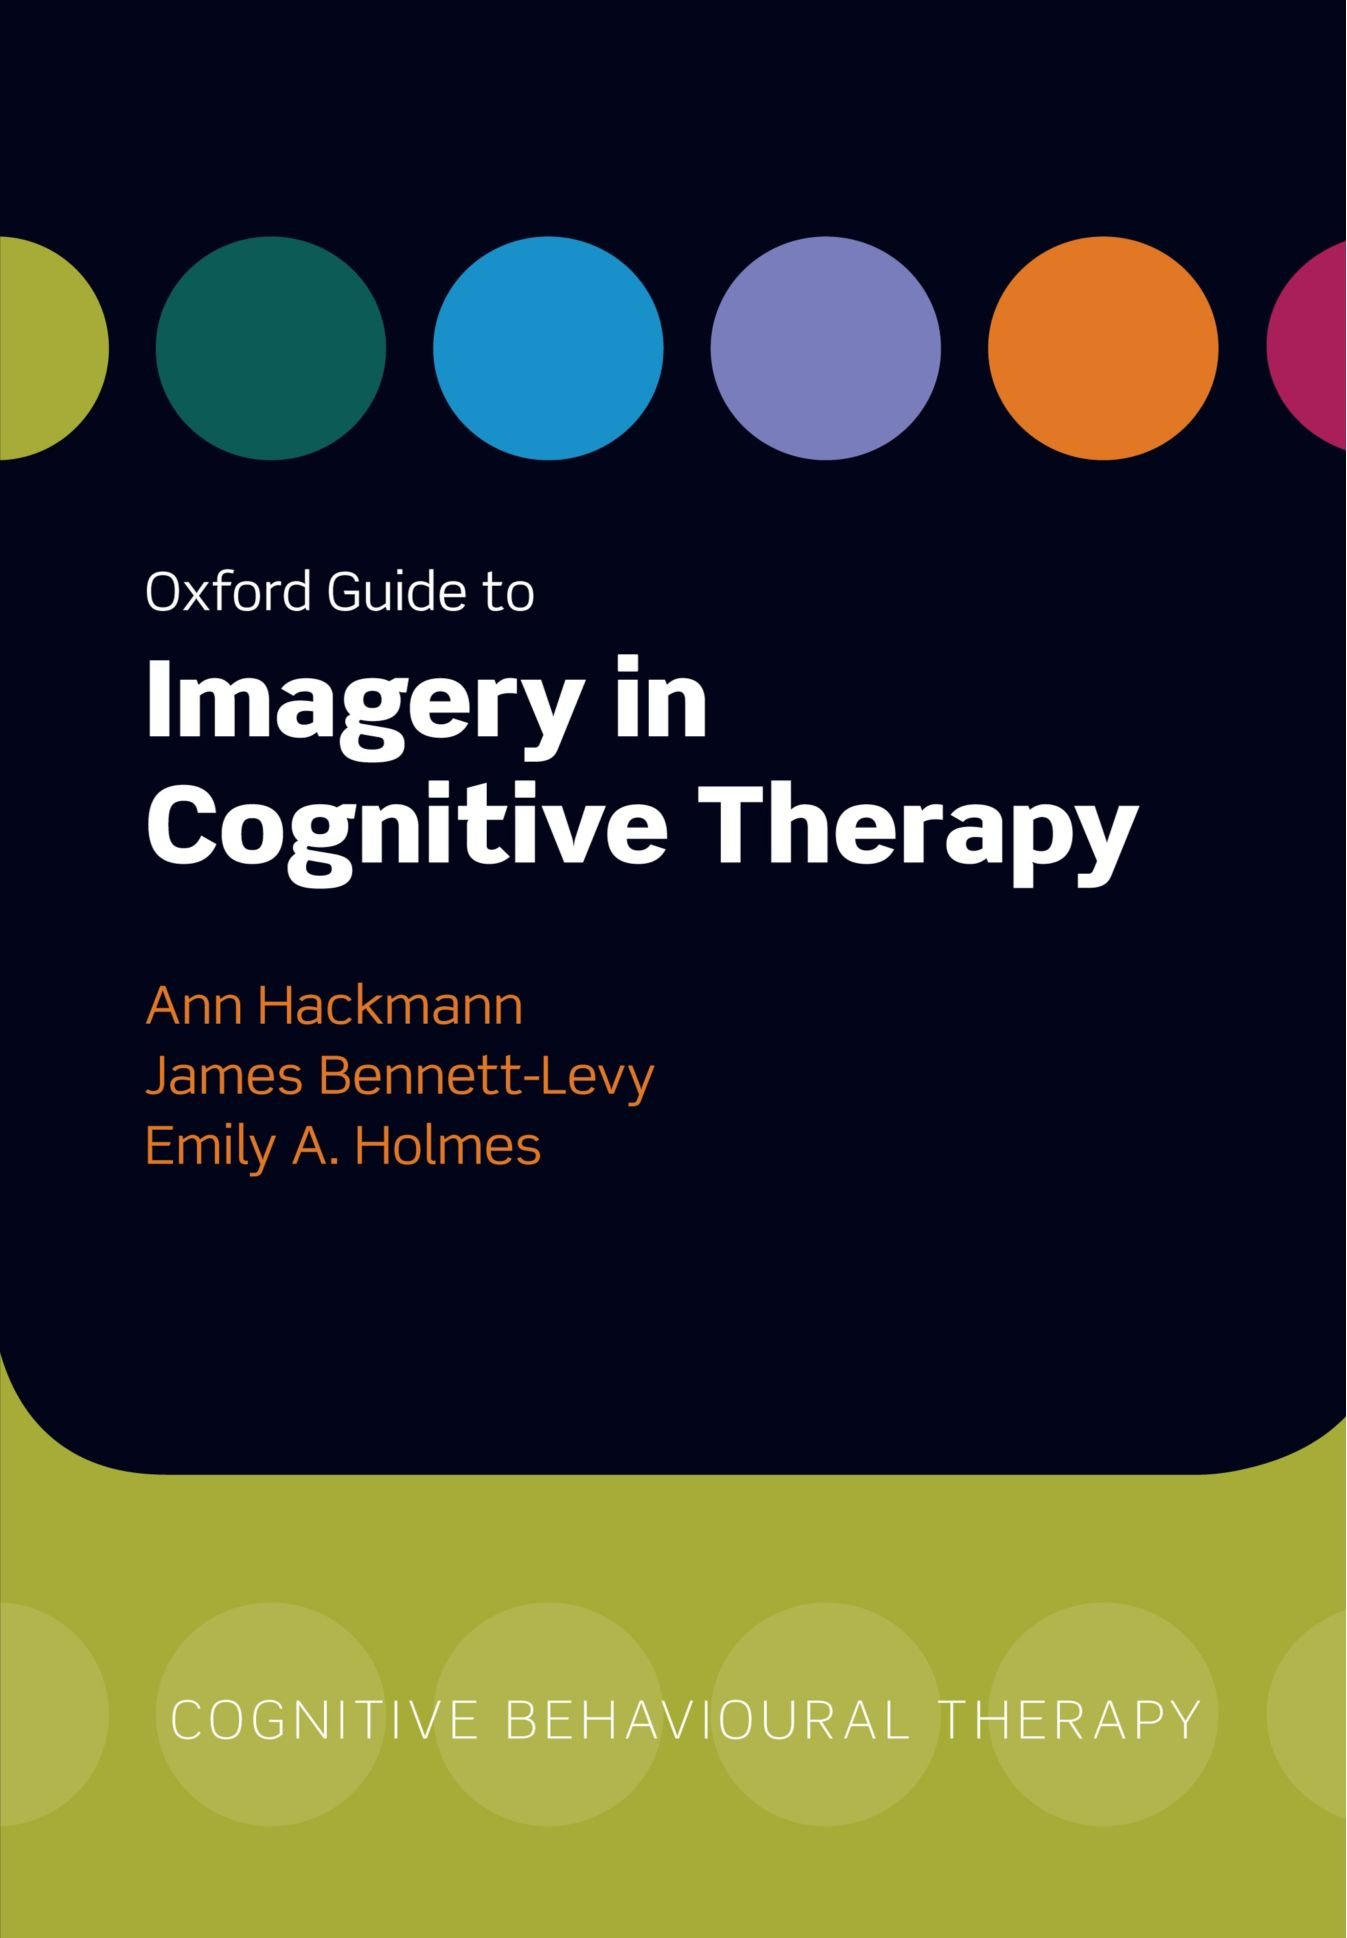 cognitive behavioral treatment for adult survivors of childhood oxford guide to imagery in cognitive therapy oxford guides to cognitive behavioural therapy